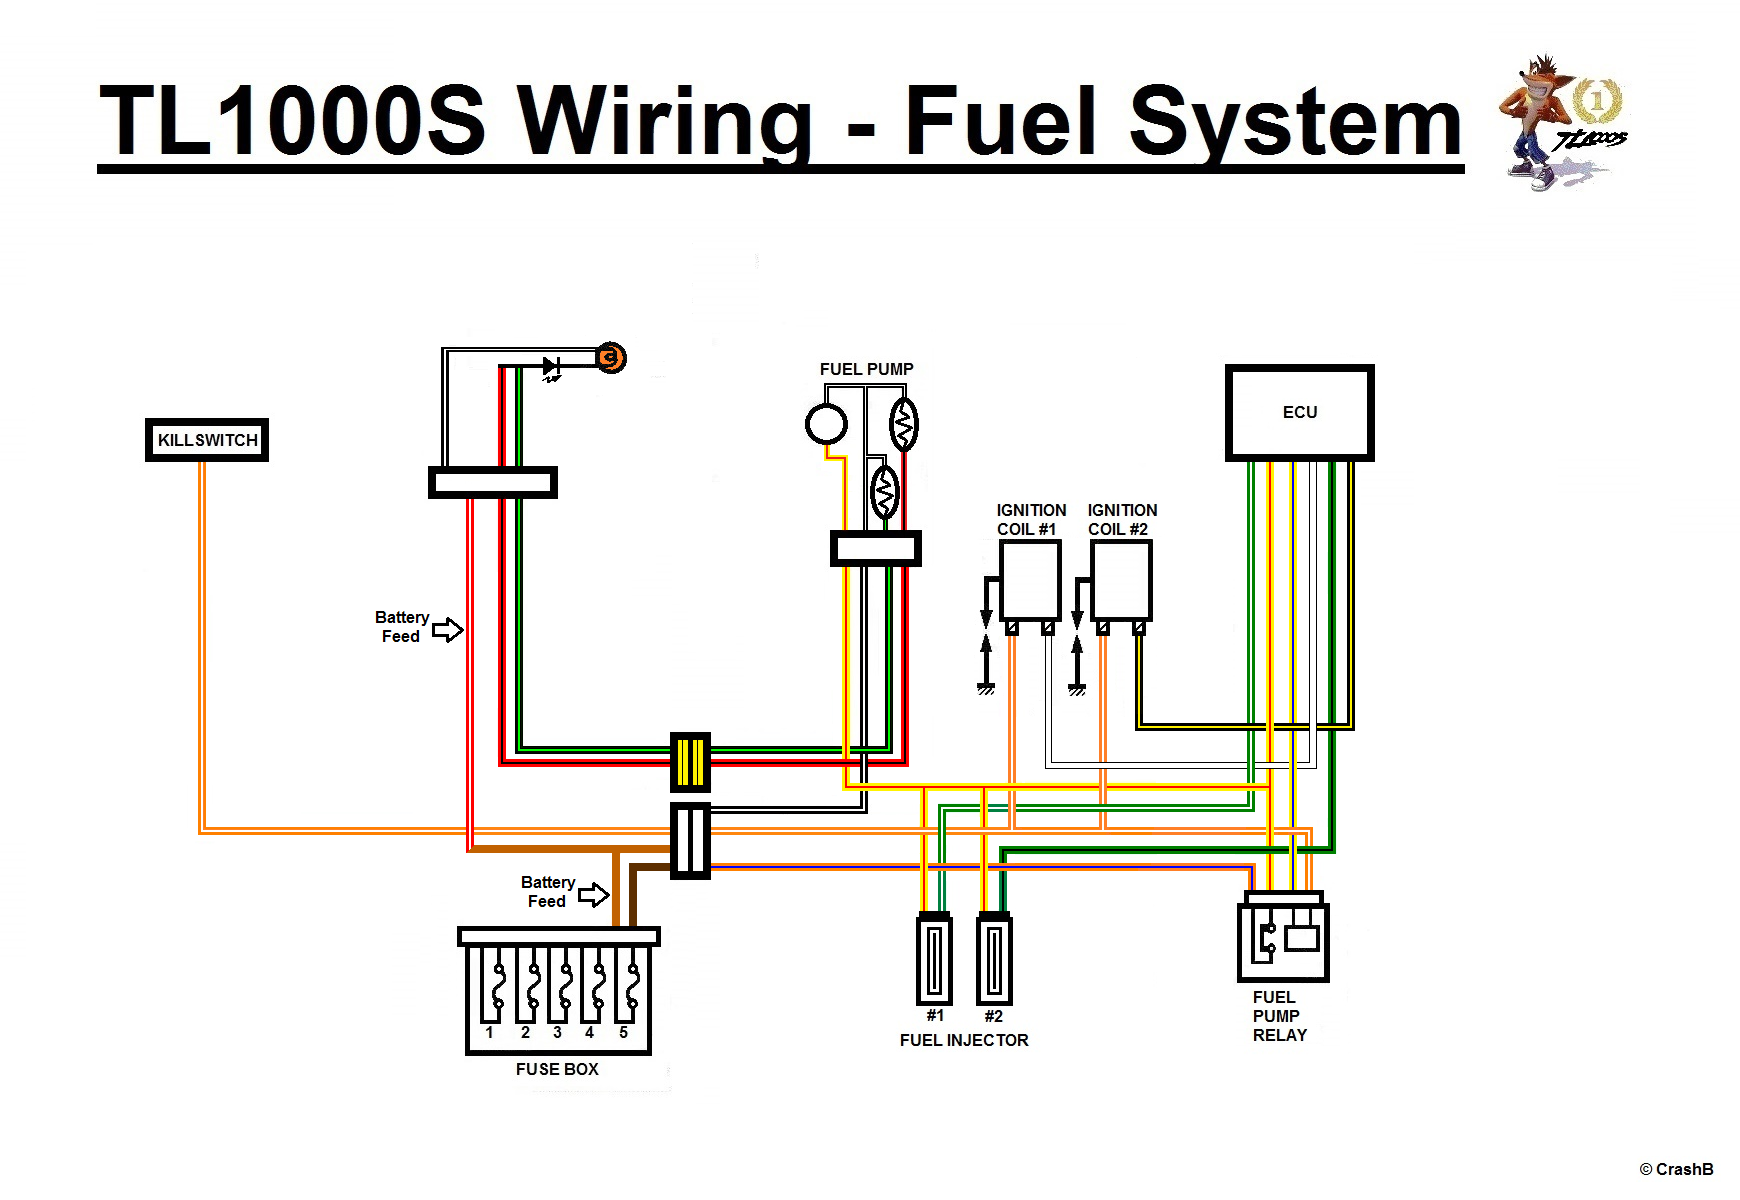 Ecm Not Pulling Yellow Blue Wire Low To Near Zero Volts Ventura Starter Solenoid Wiring Diagram Fuel System